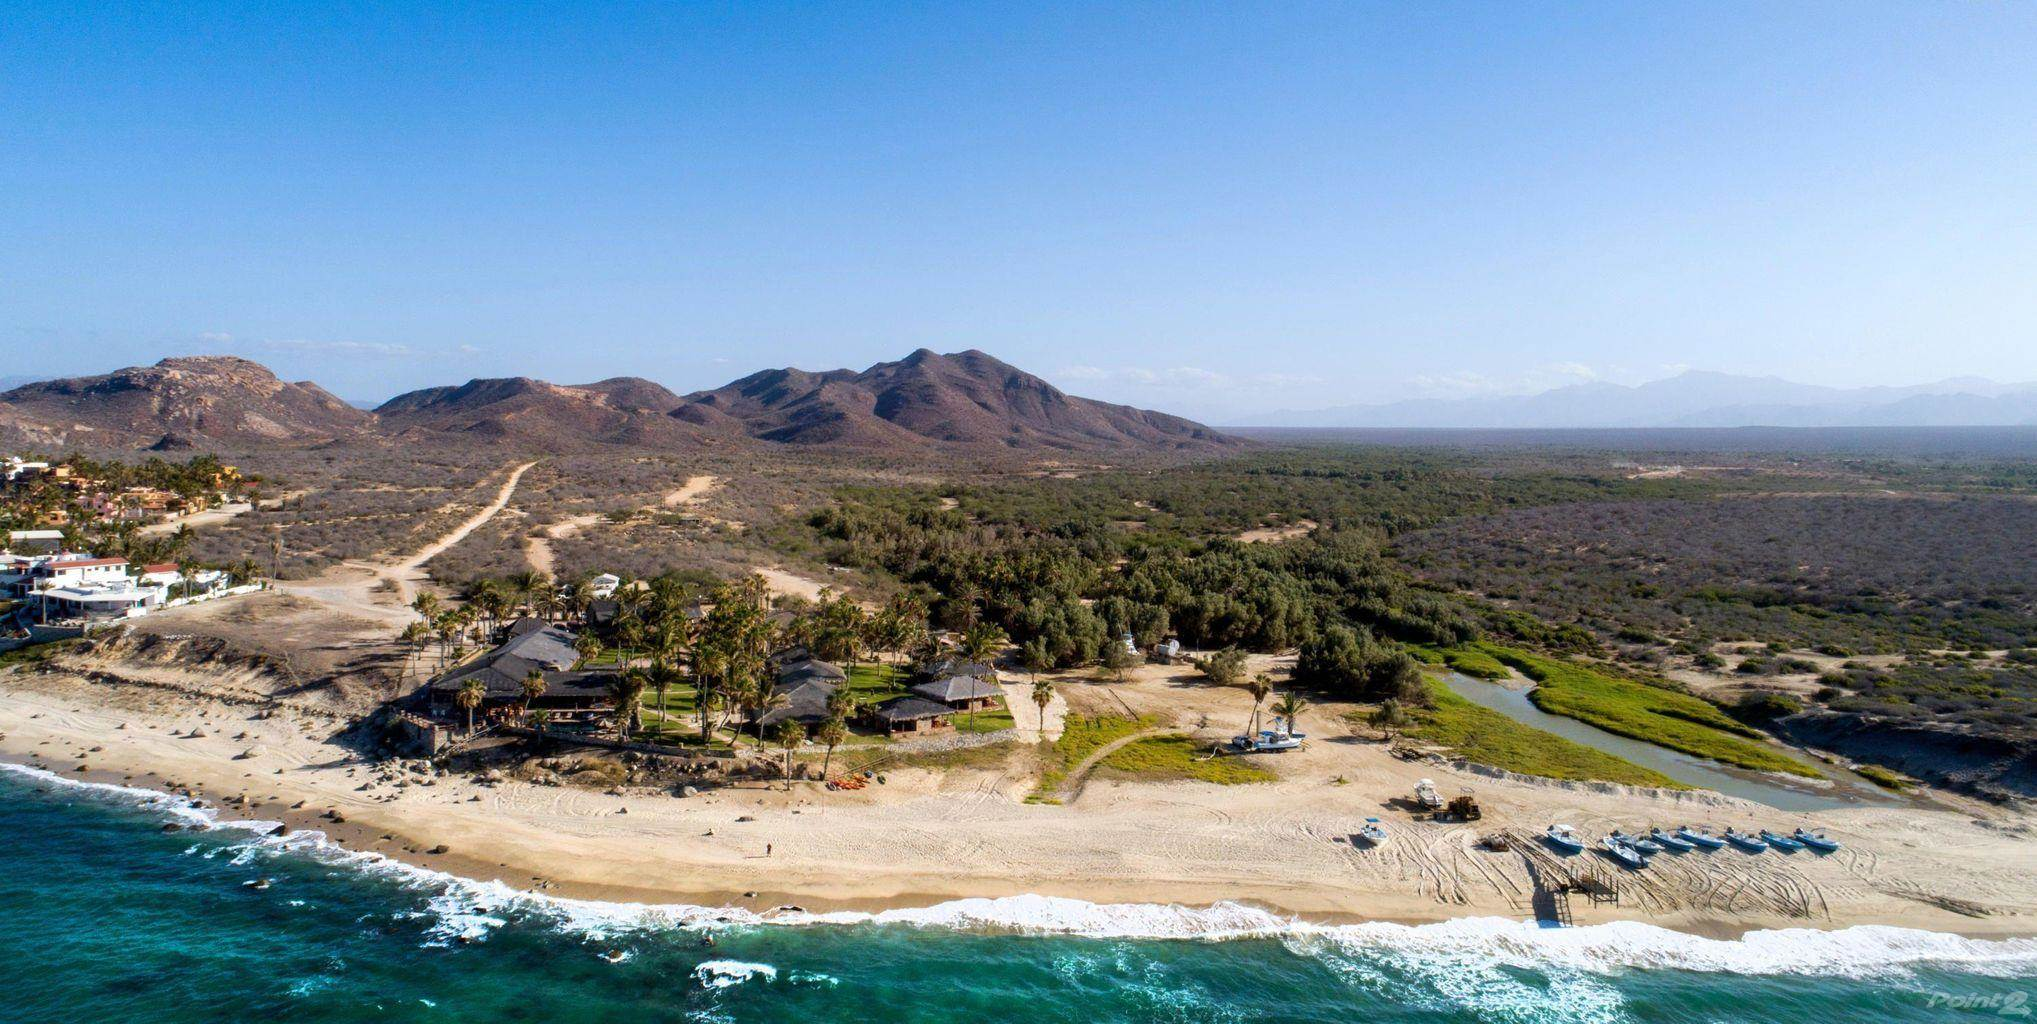 Residenziale in ICONIC OCEANFRONT RESORT + 160 ACRE LOT, IN ONE OF THE MOST TRESURED LOCATIONS OF MÉXICO, EAST CAPE, Los Barriles, Baja California Sur ,23300  , Messico